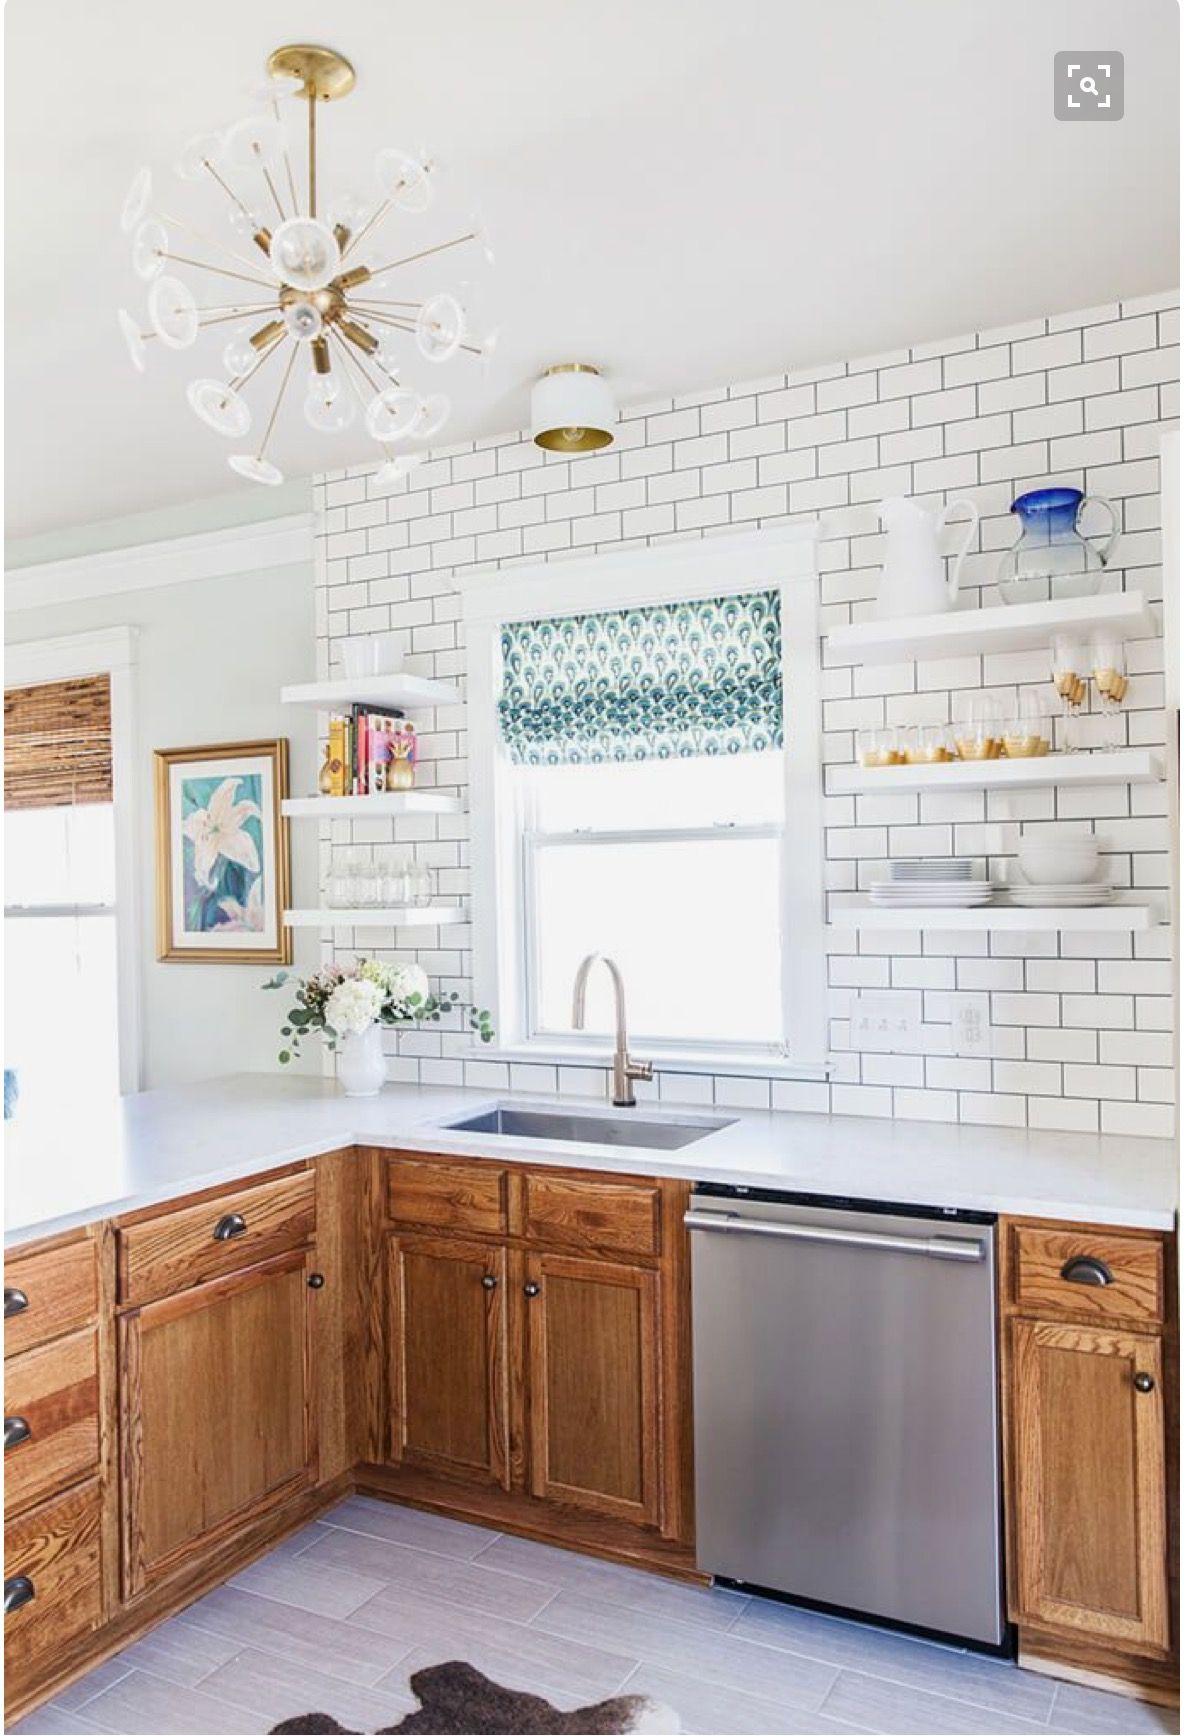 Discover Ideas About Kitchen Decor